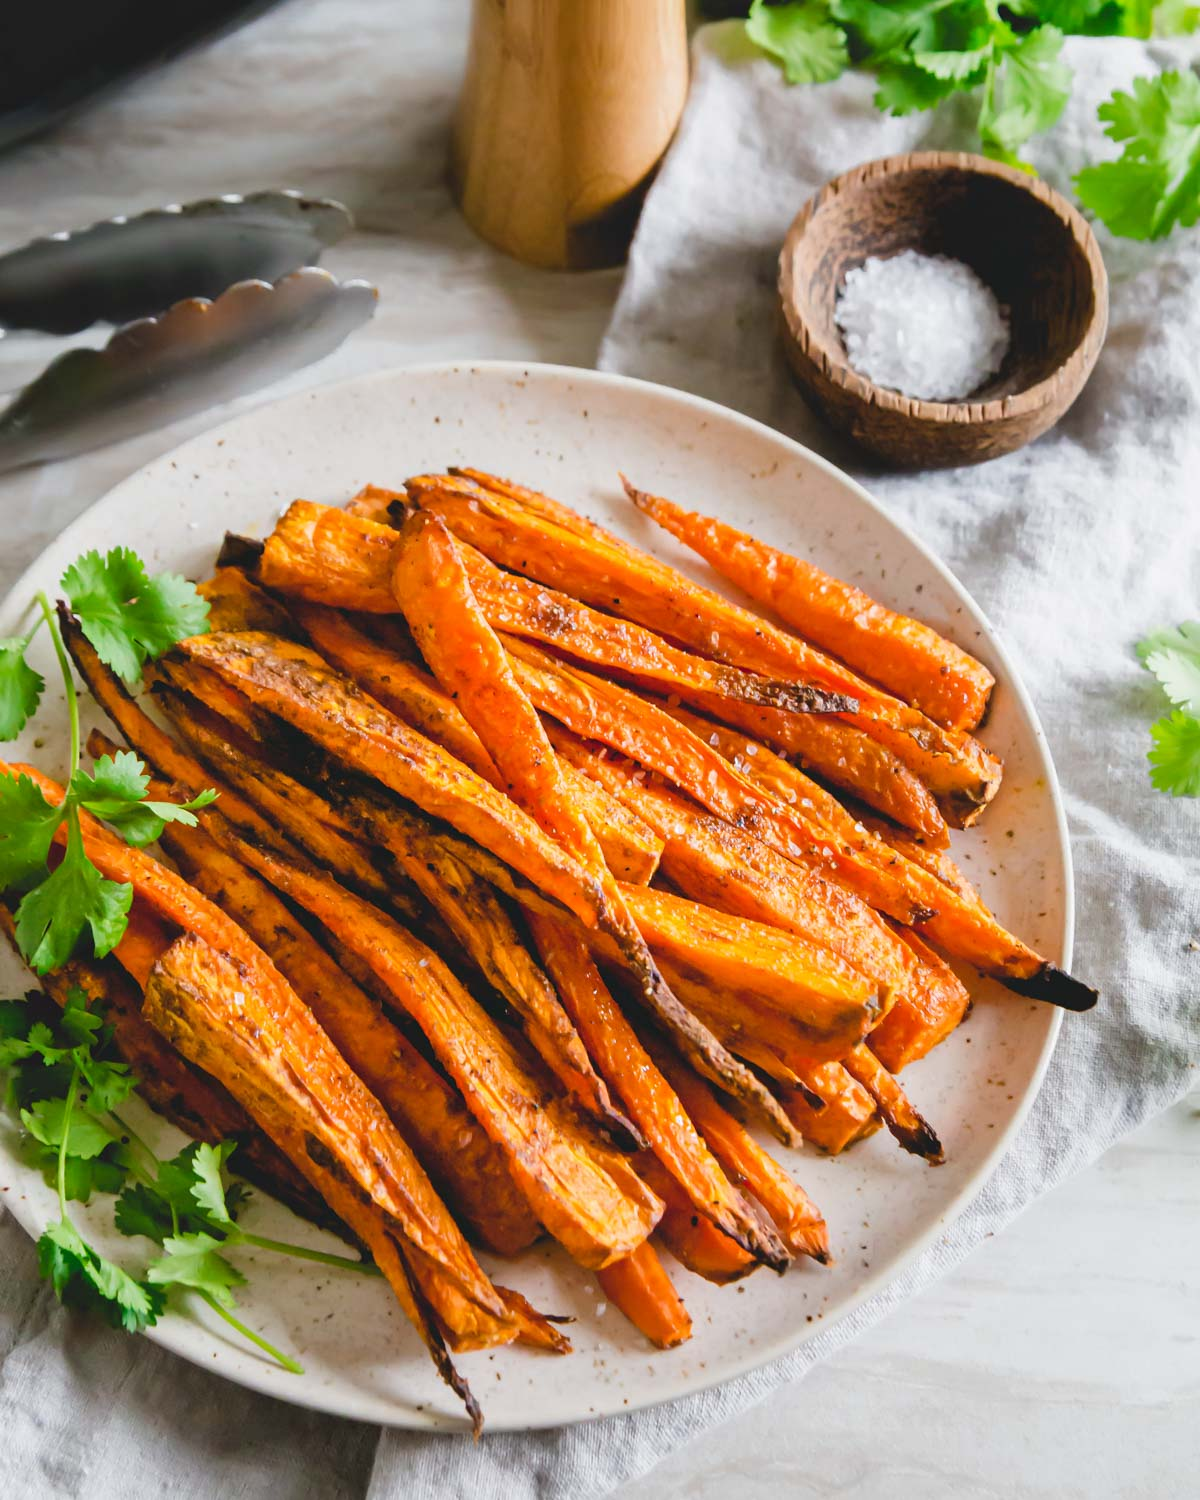 Simple air fryer savory roasted carrots complement almost any meal and are made in just 20 minutes!